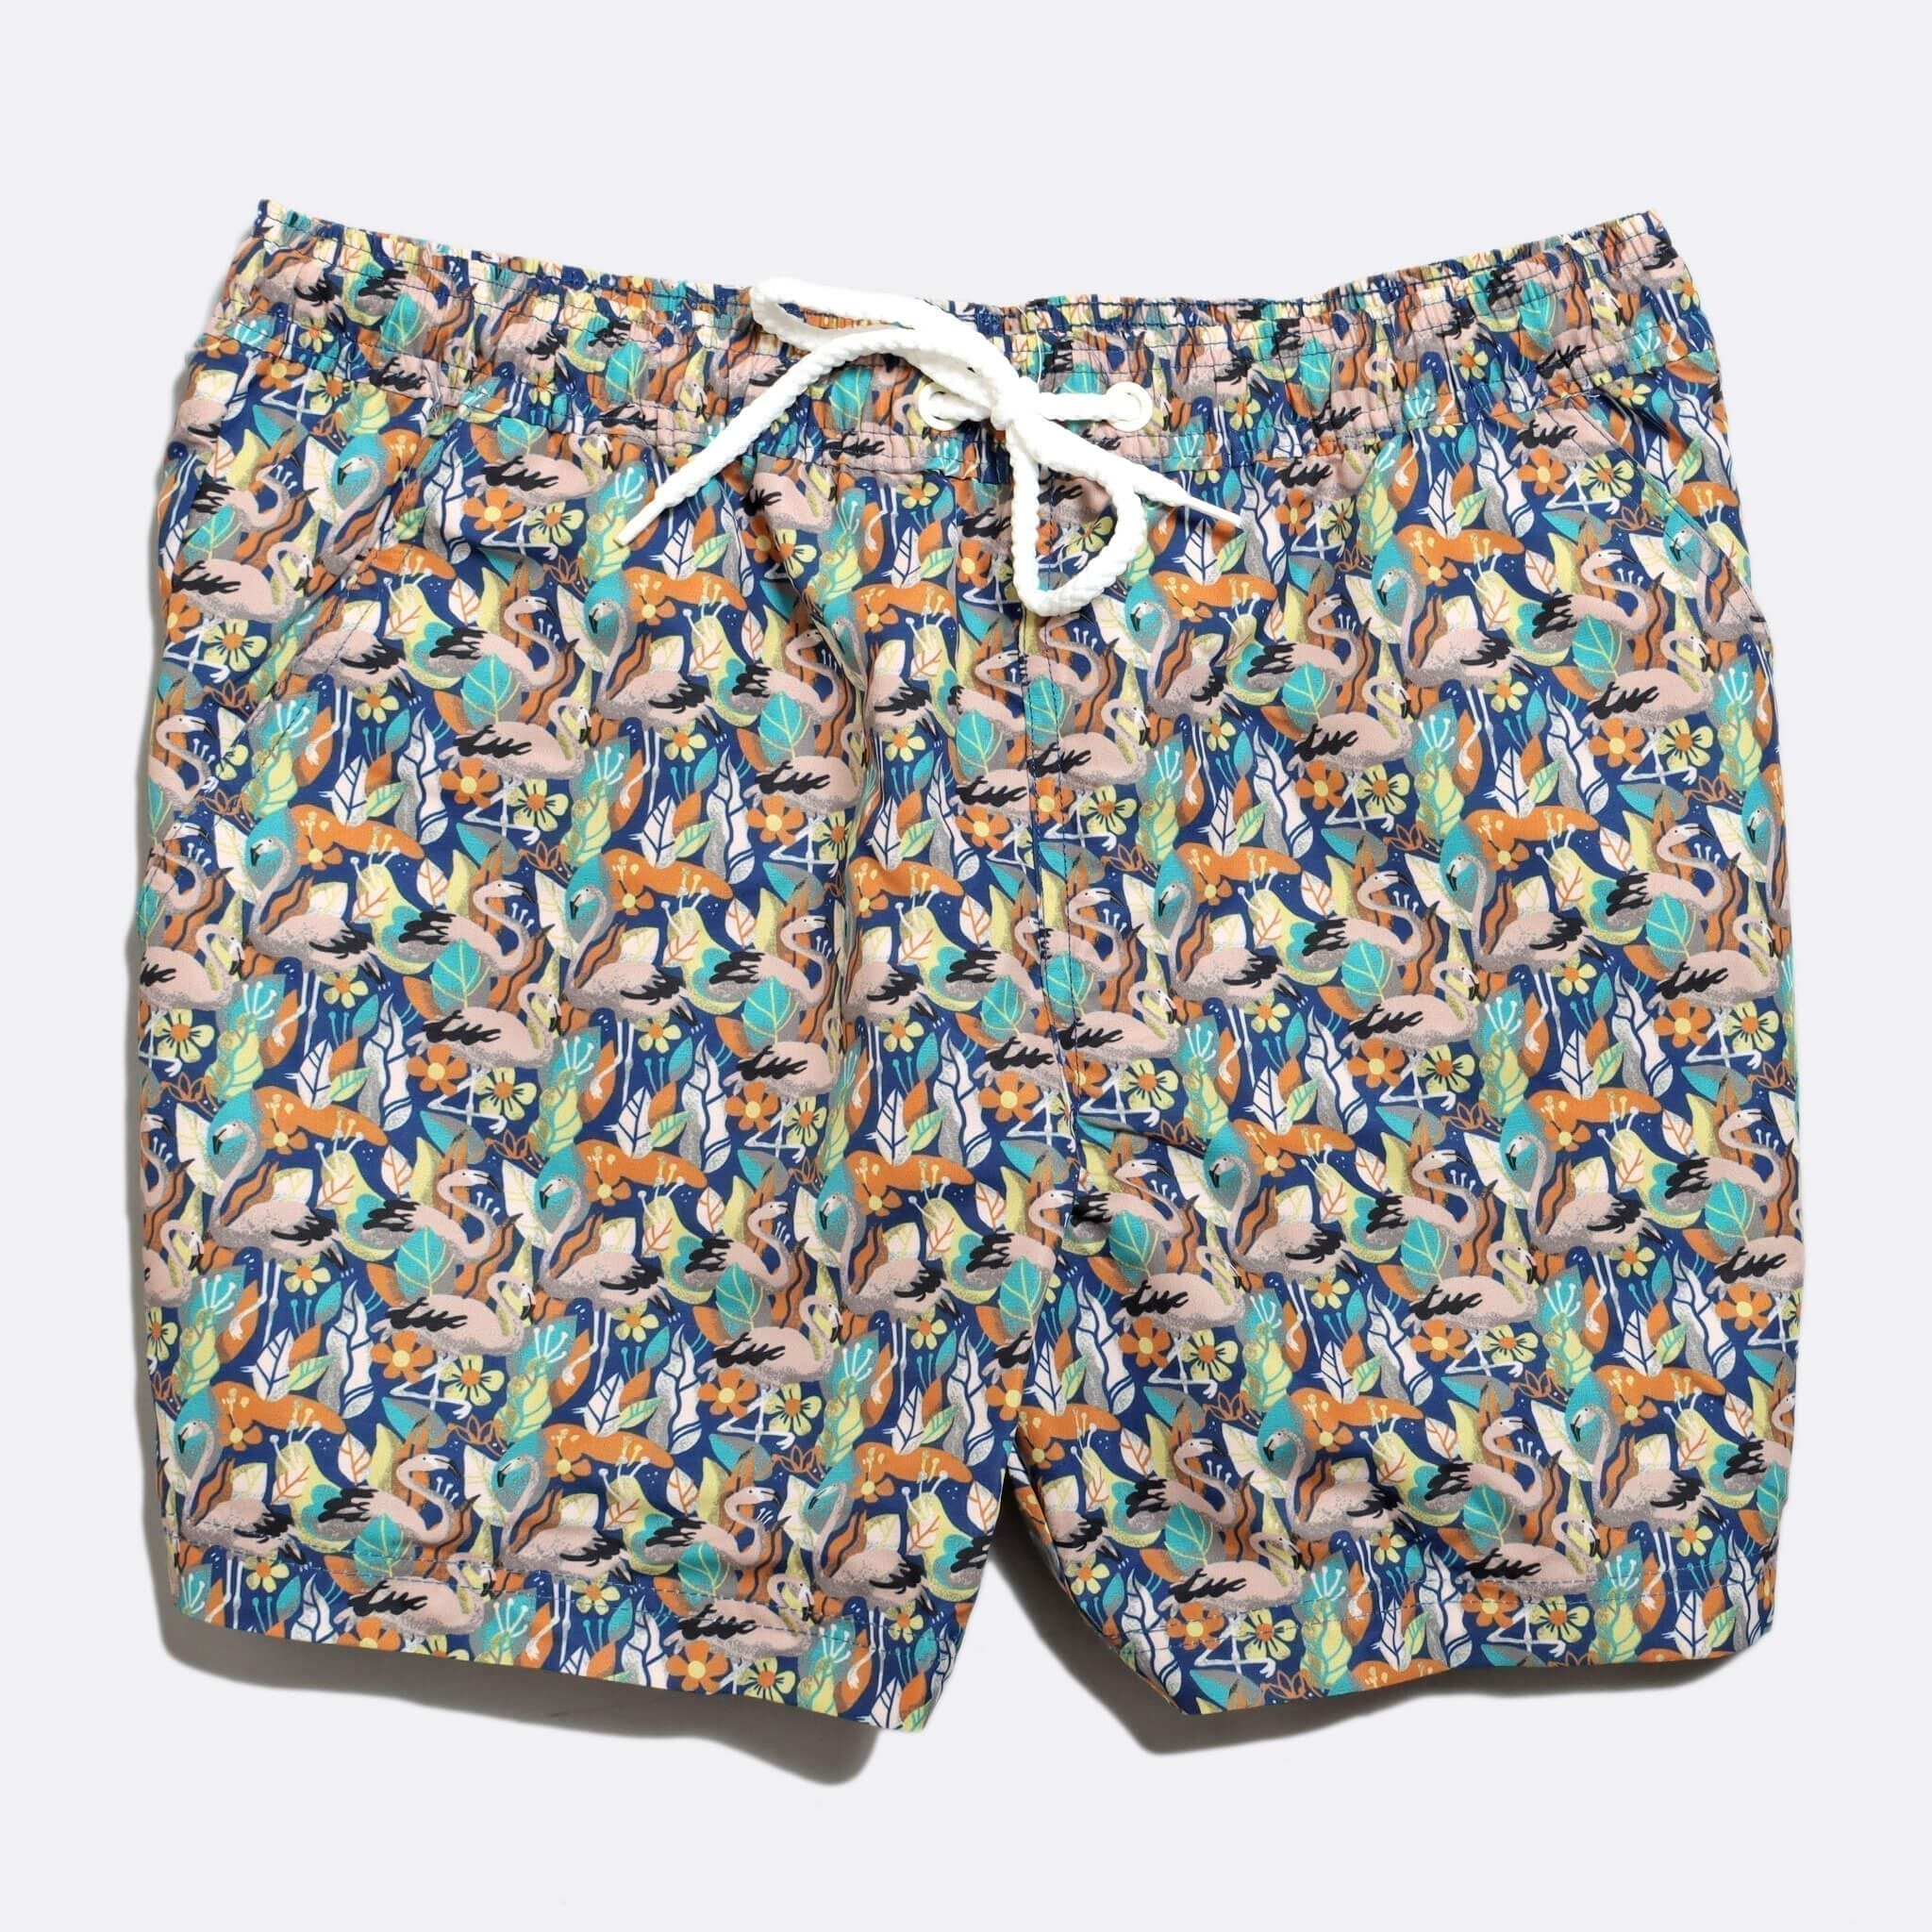 Far Afield x Selfridges Birds Print Swim Shorts a Multi Colour Recycled Plastic Flamingo Repeat Pattern Fabric Casual